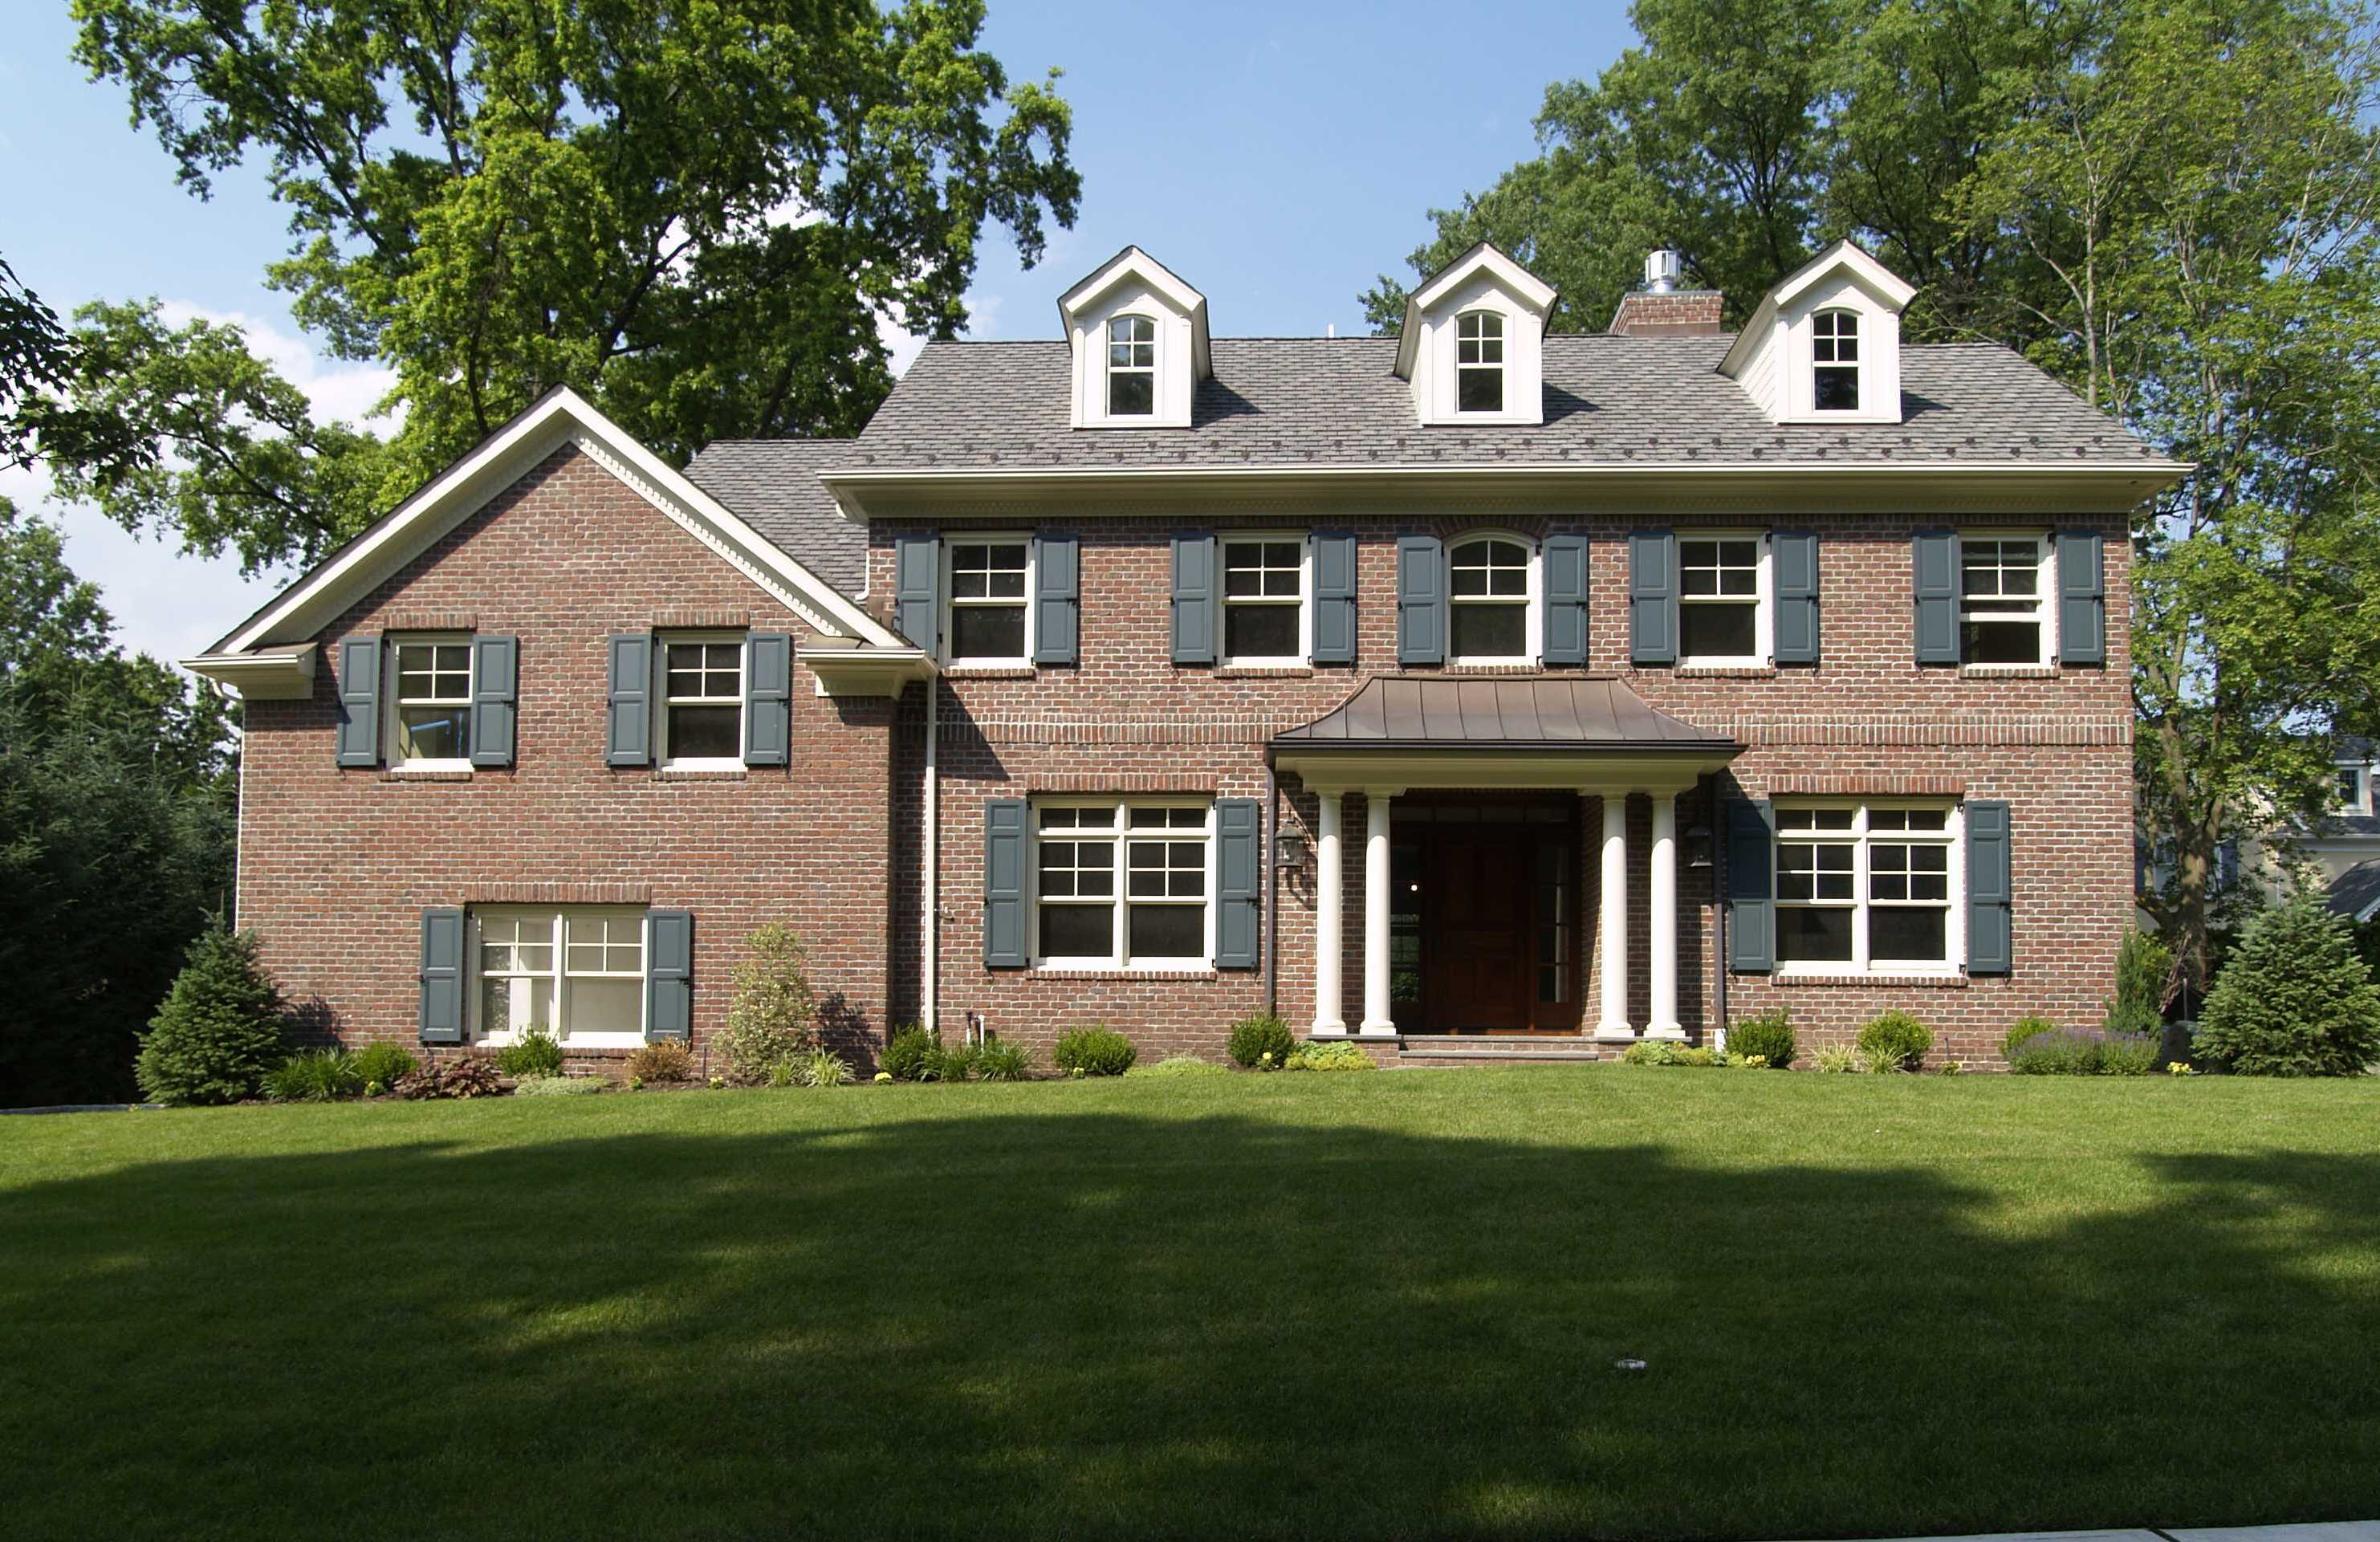 Elegant New Construction In Closter Nj Bergen County Homes